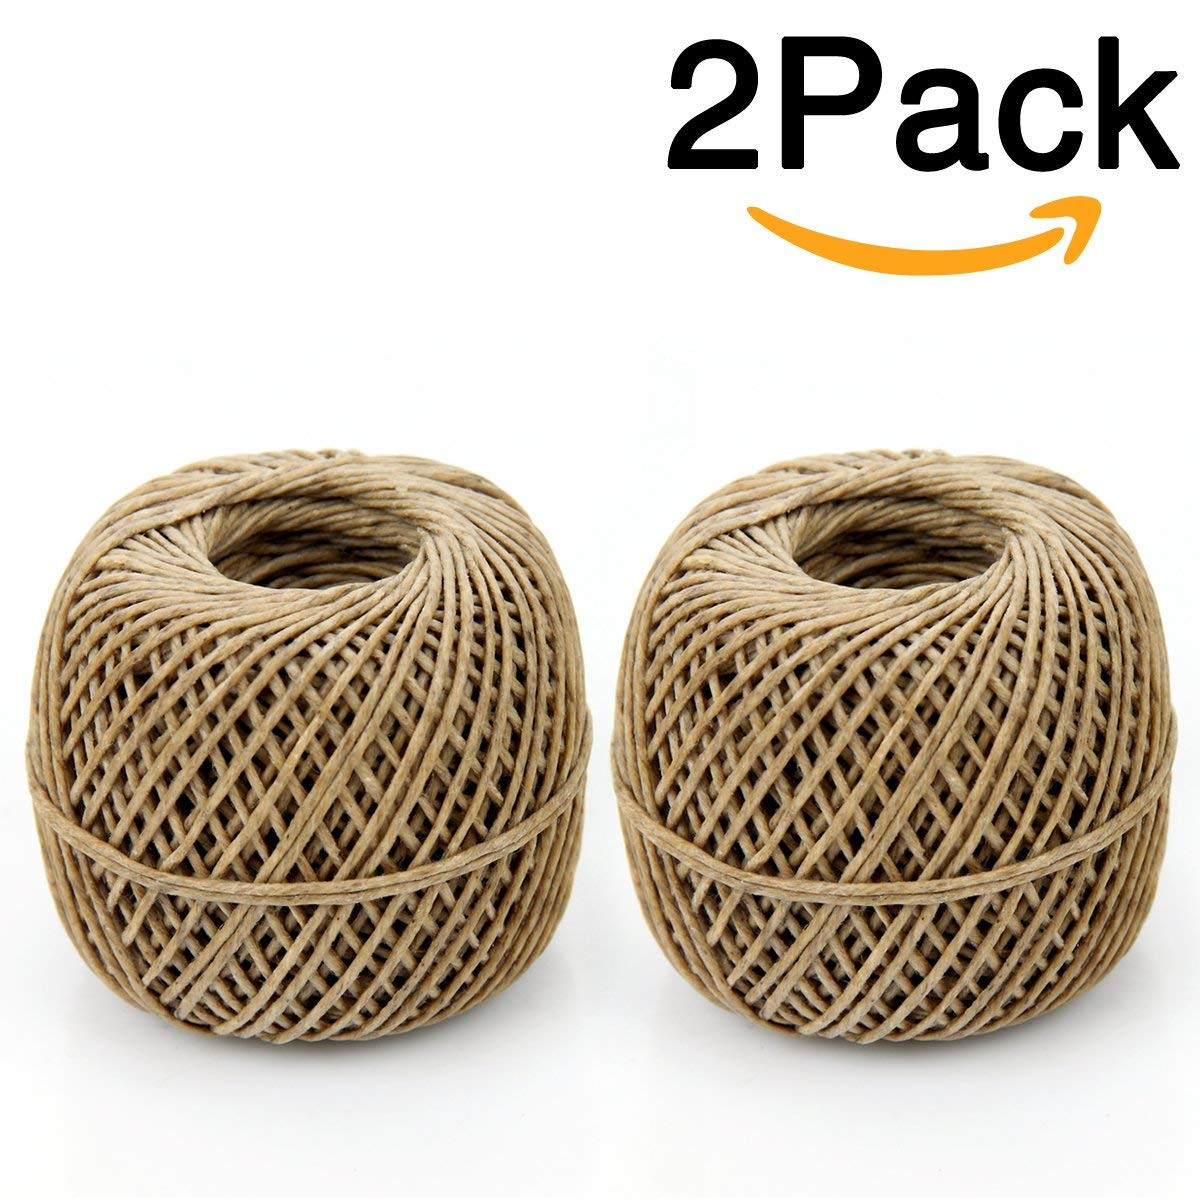 30 attractive Rope Wrapped Vase